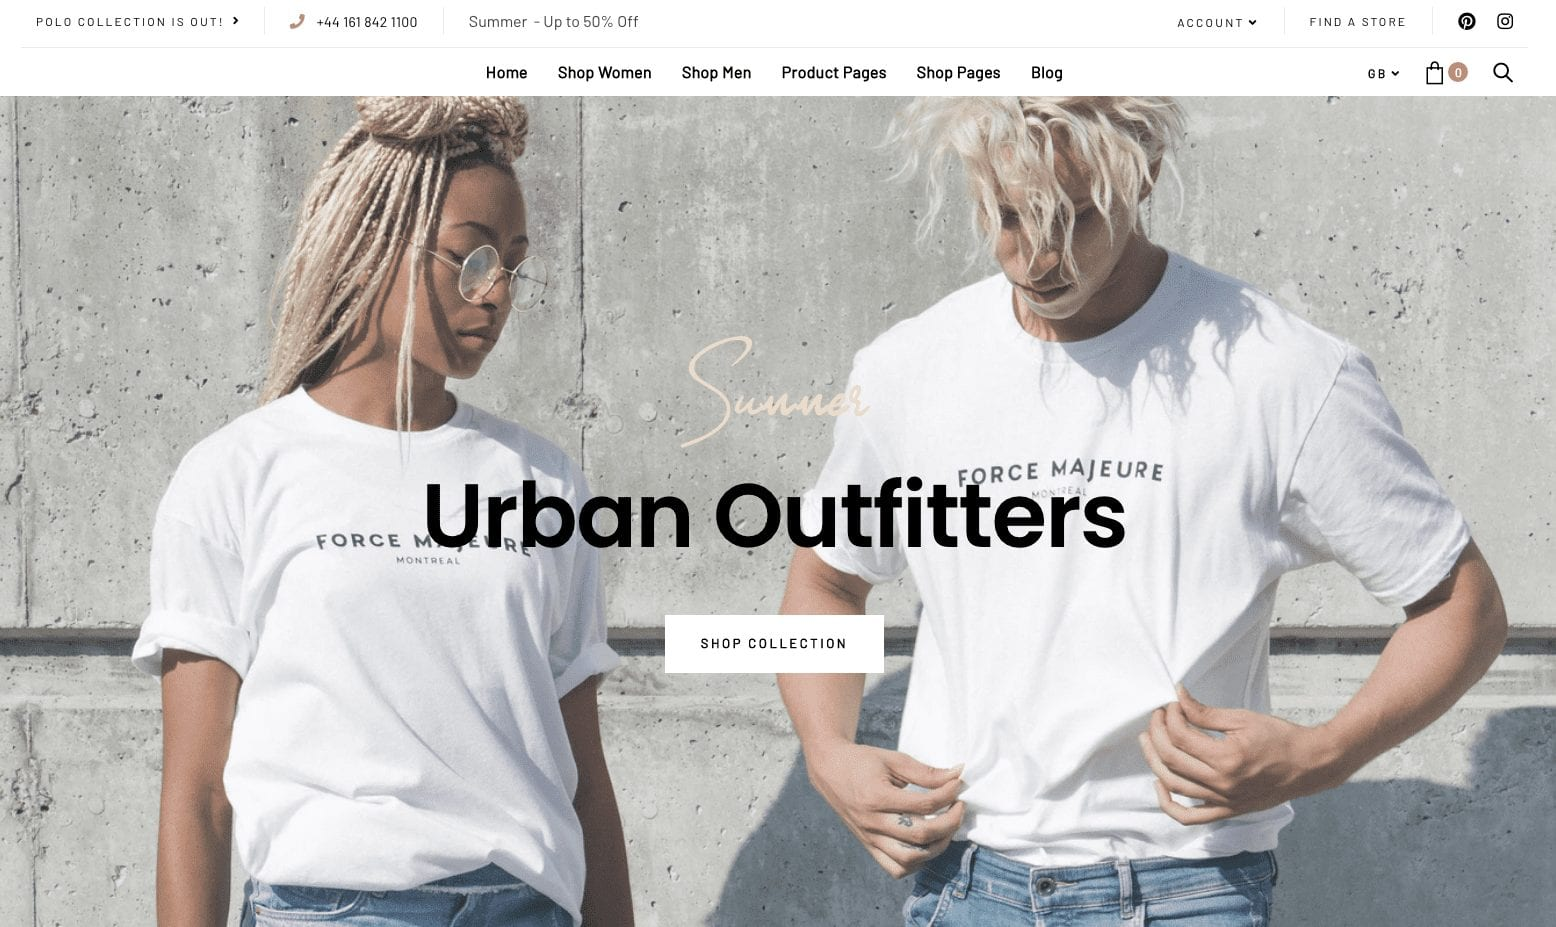 Website Design for Urban Outfitters